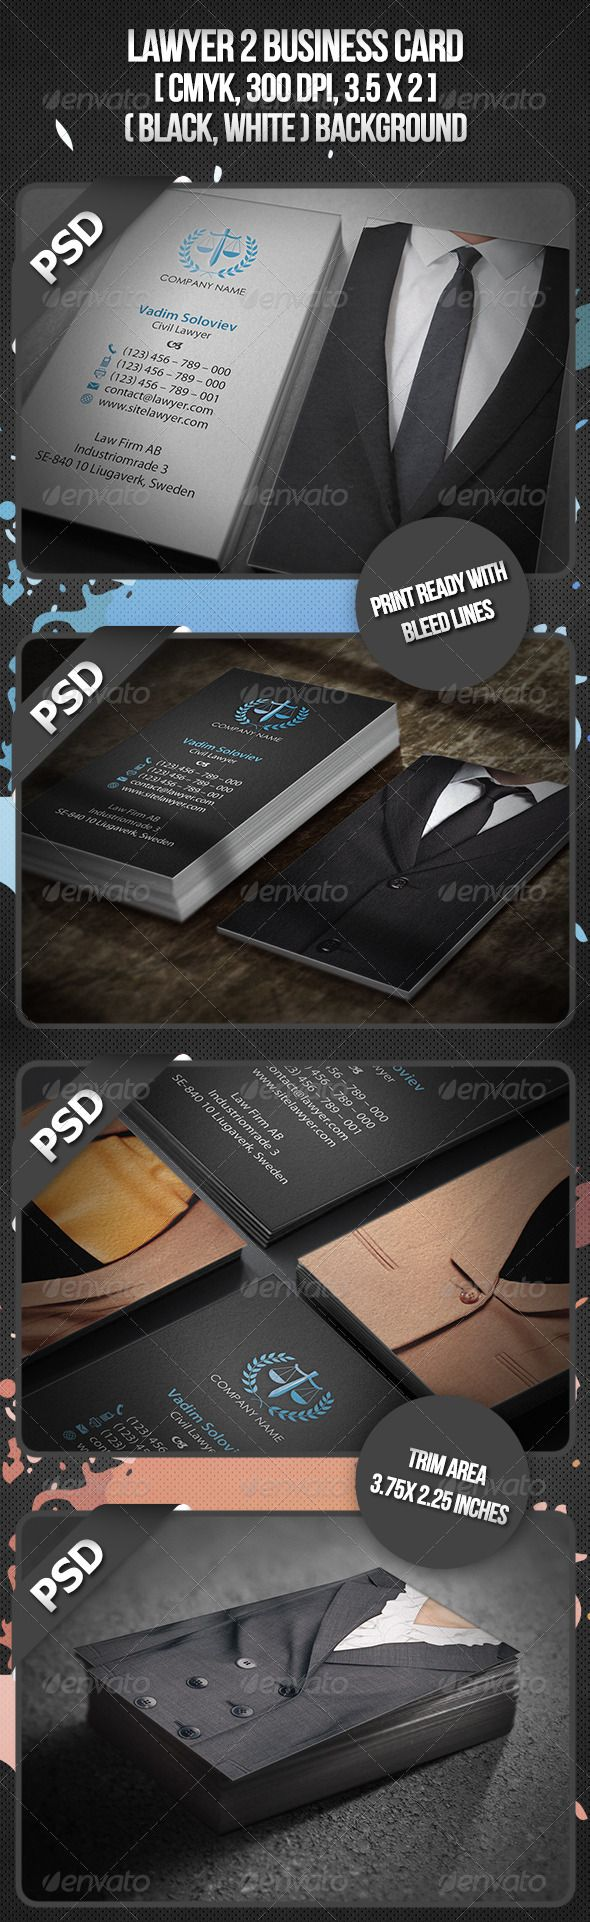 37 best Lawyer Business Cards images on Pinterest | Black, Cards ...